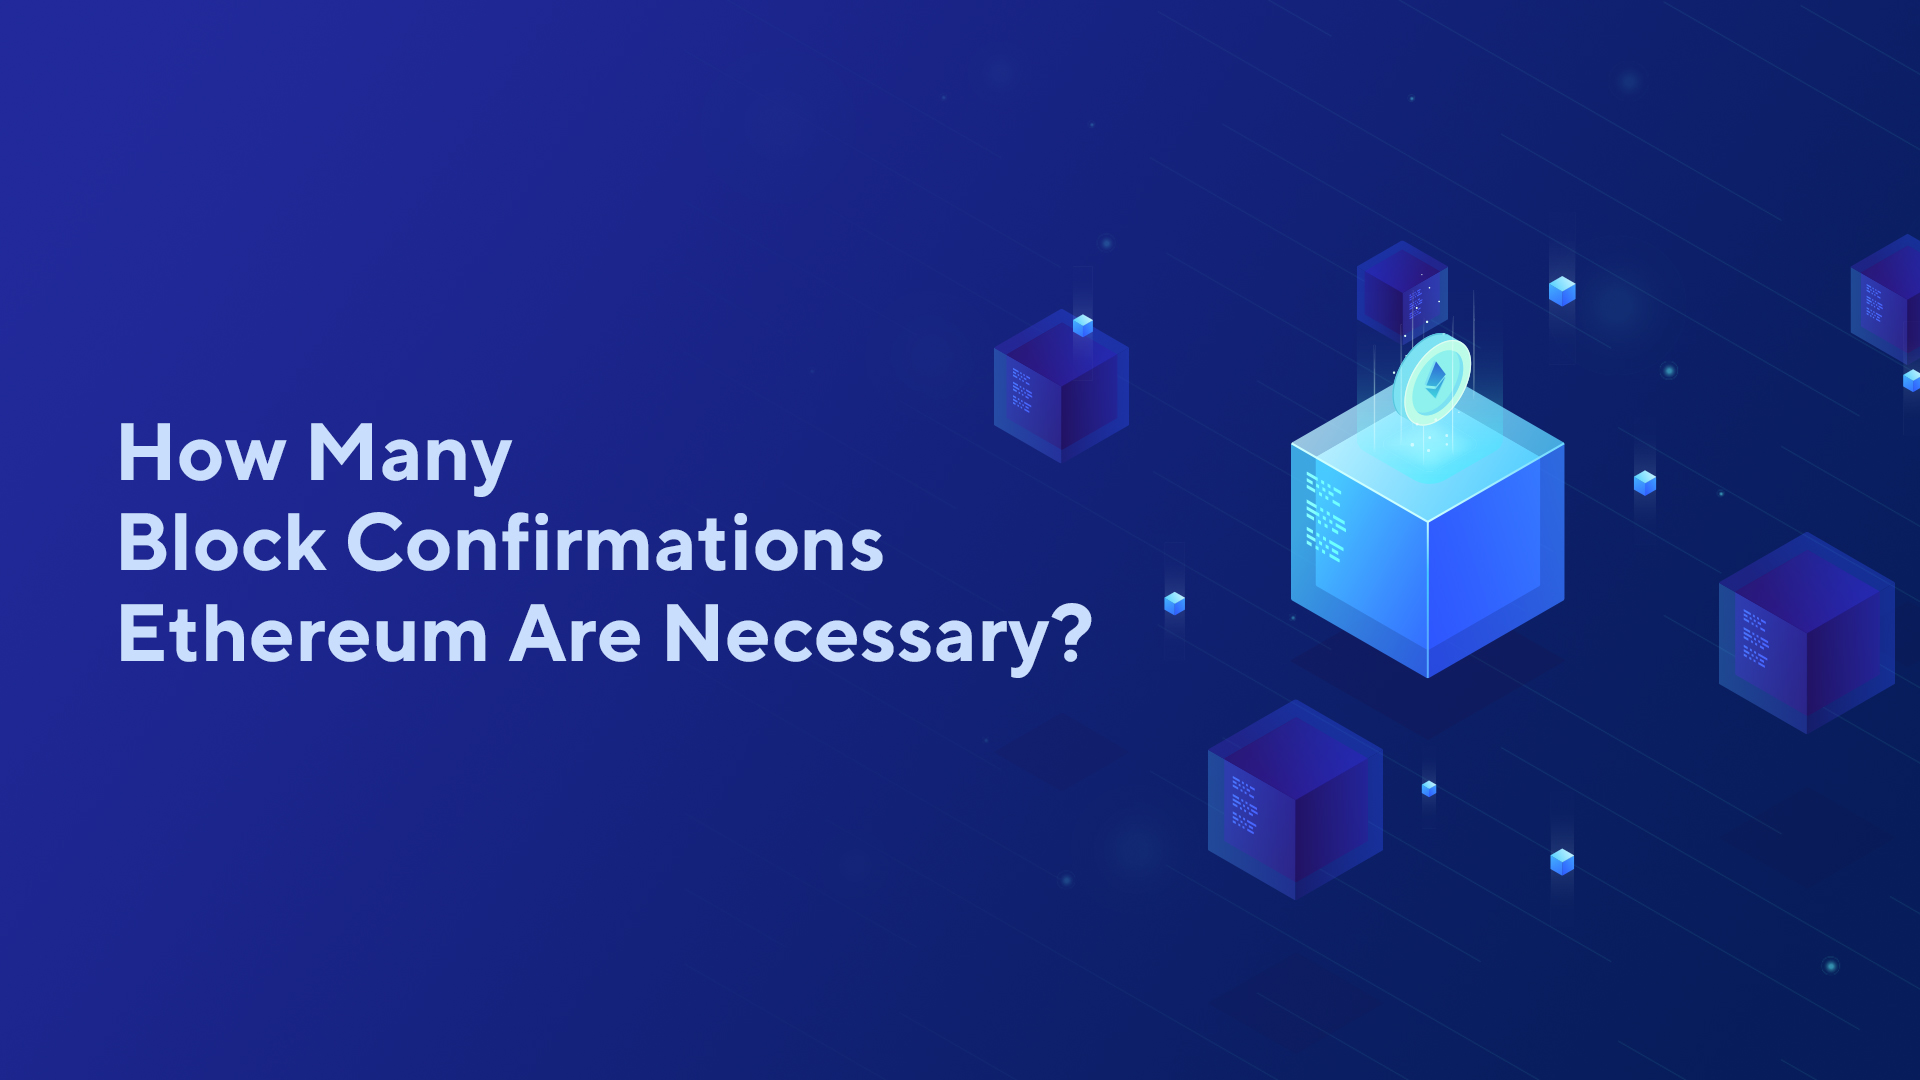 How Many Block Confirmations Ethereum Are Necessary?